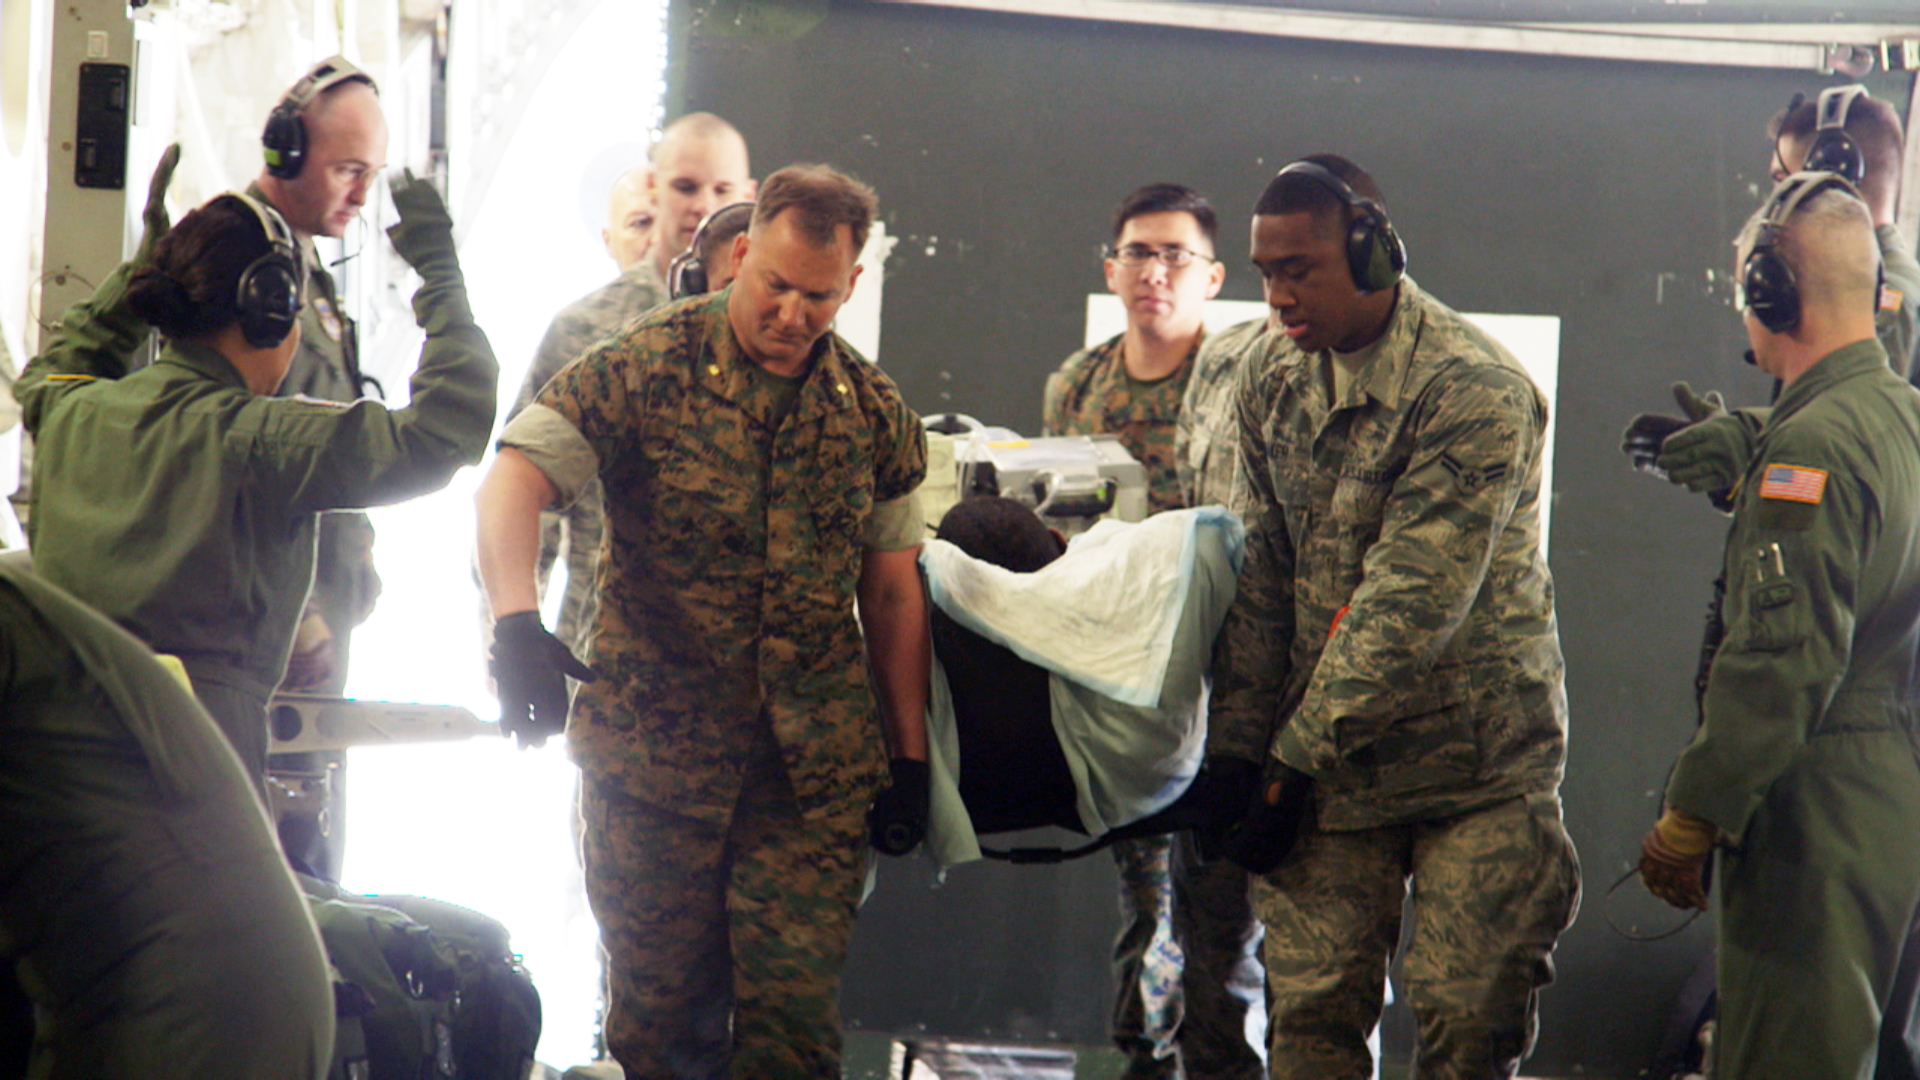 Military medical team at Ramstein Air Base in Germany